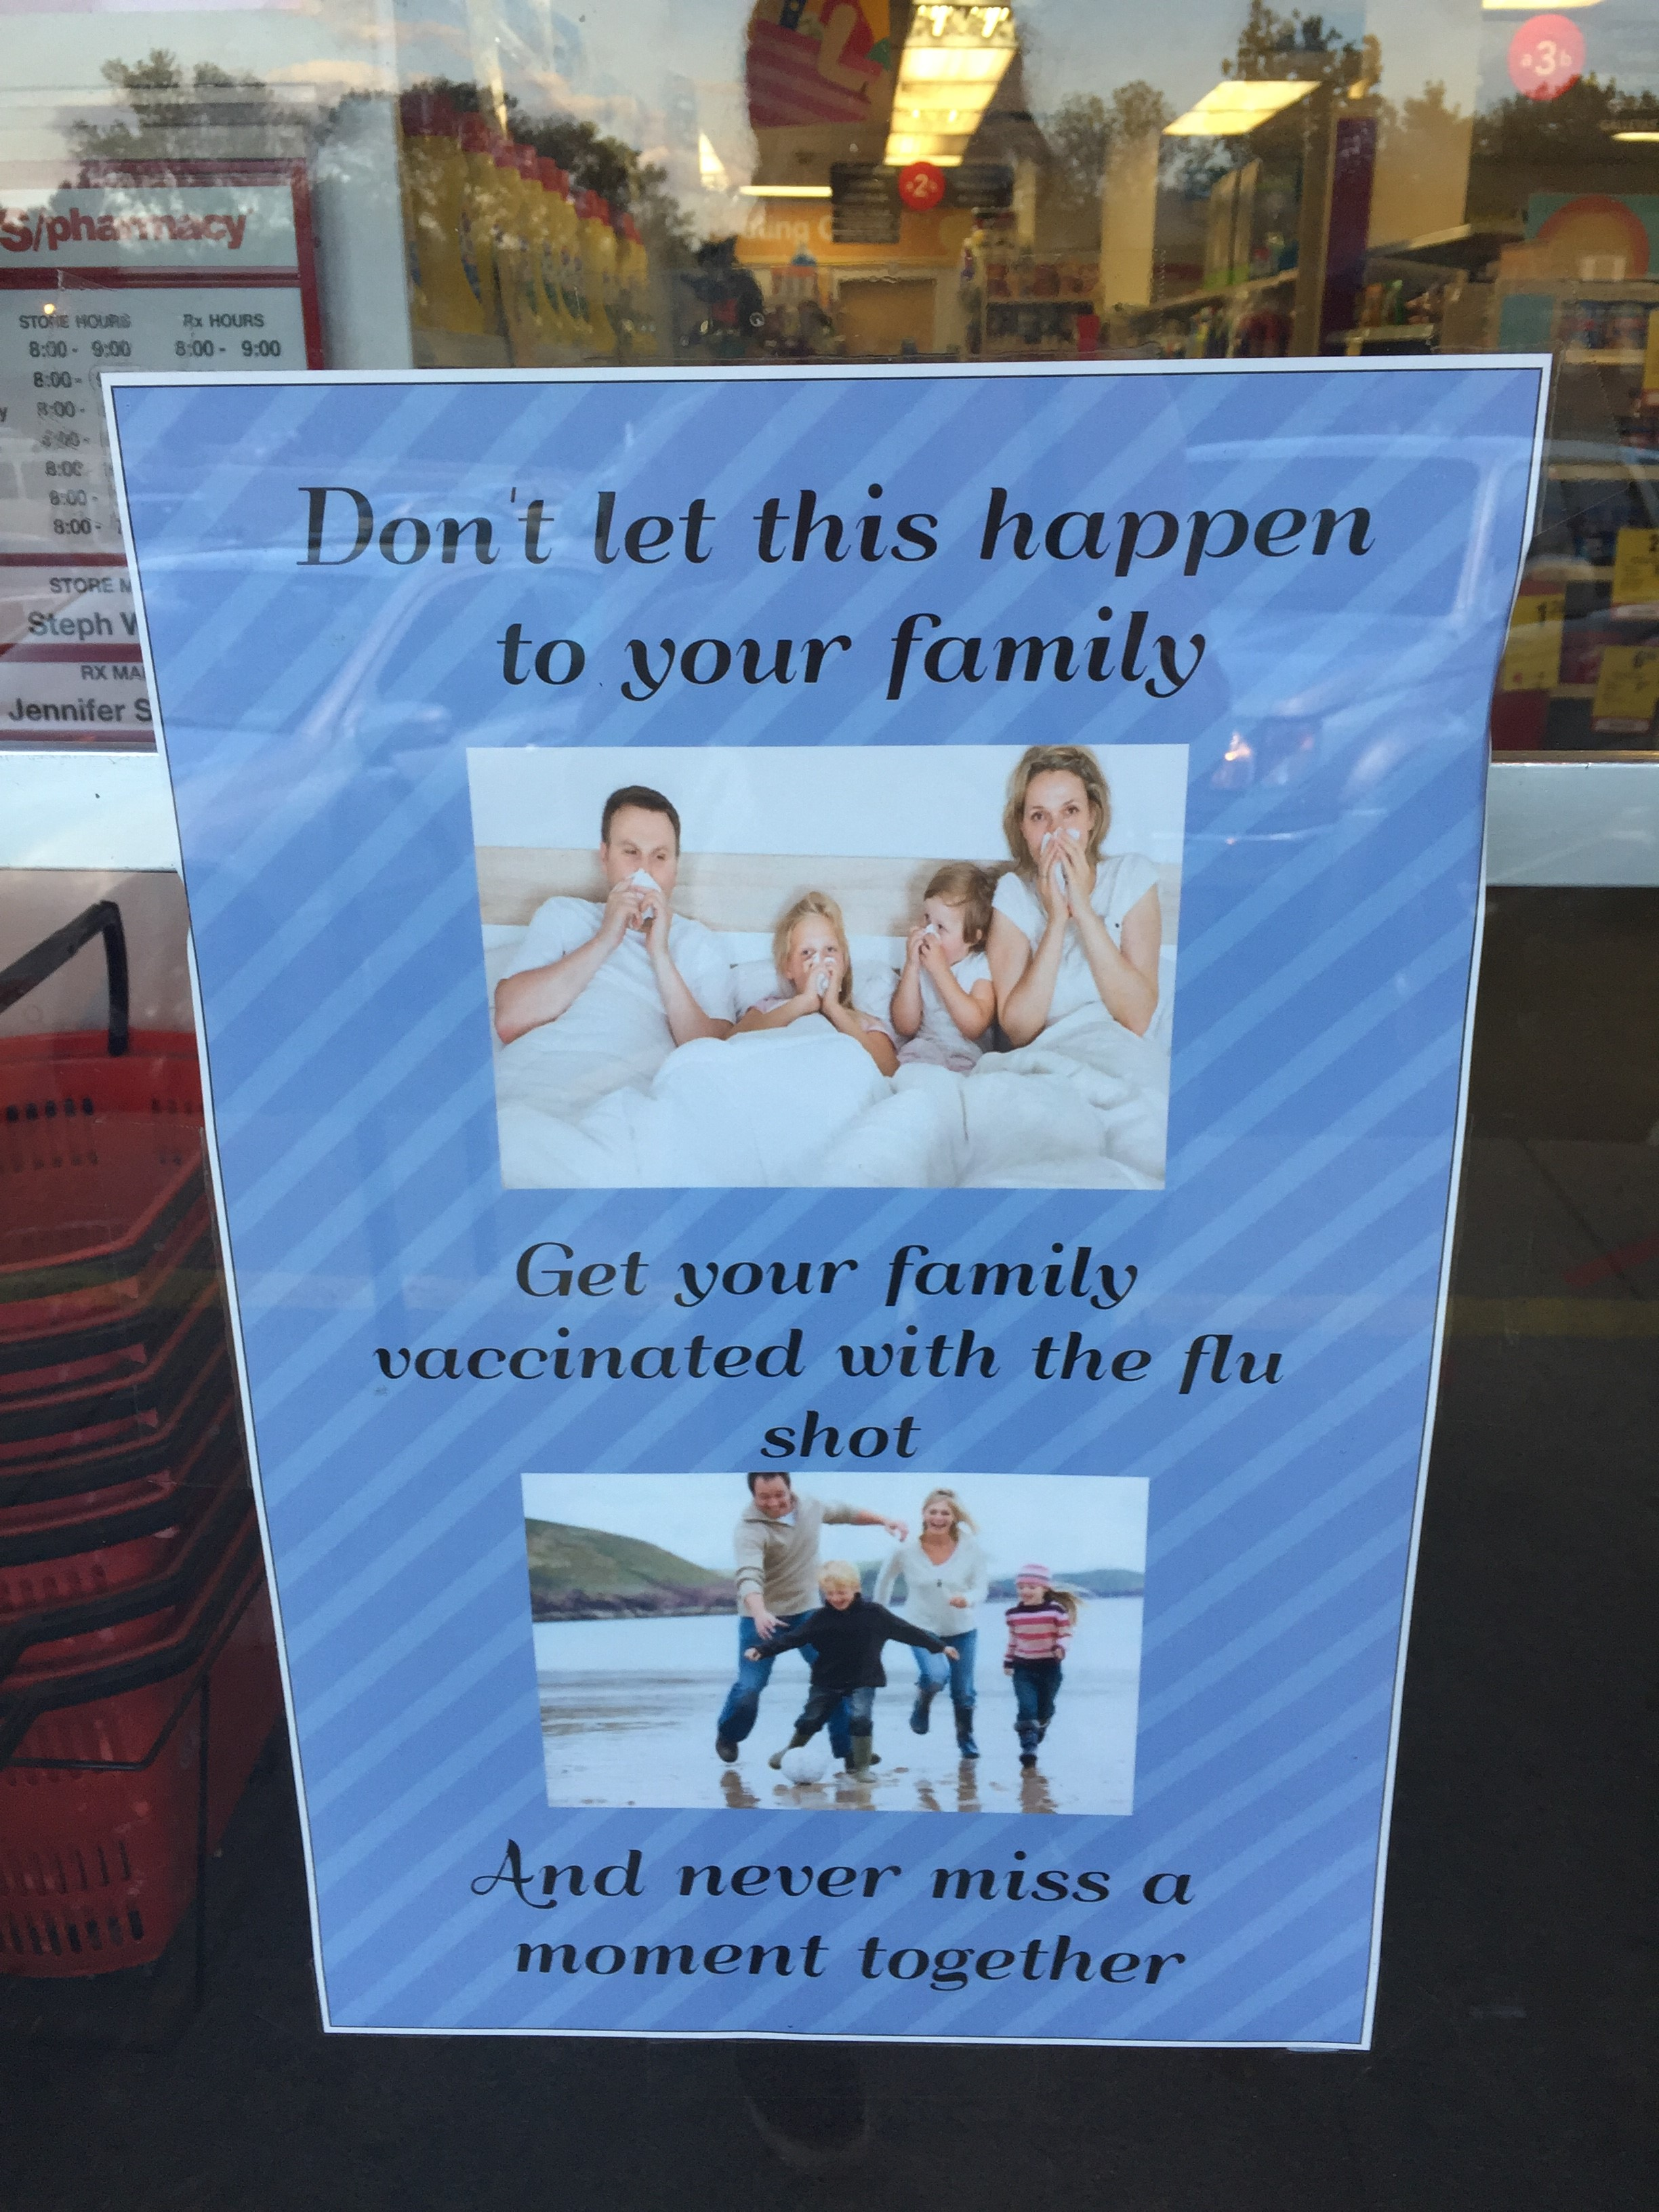 CVS Threatens Great Family Loss Without a Flu Shot AGE OF AUTISM